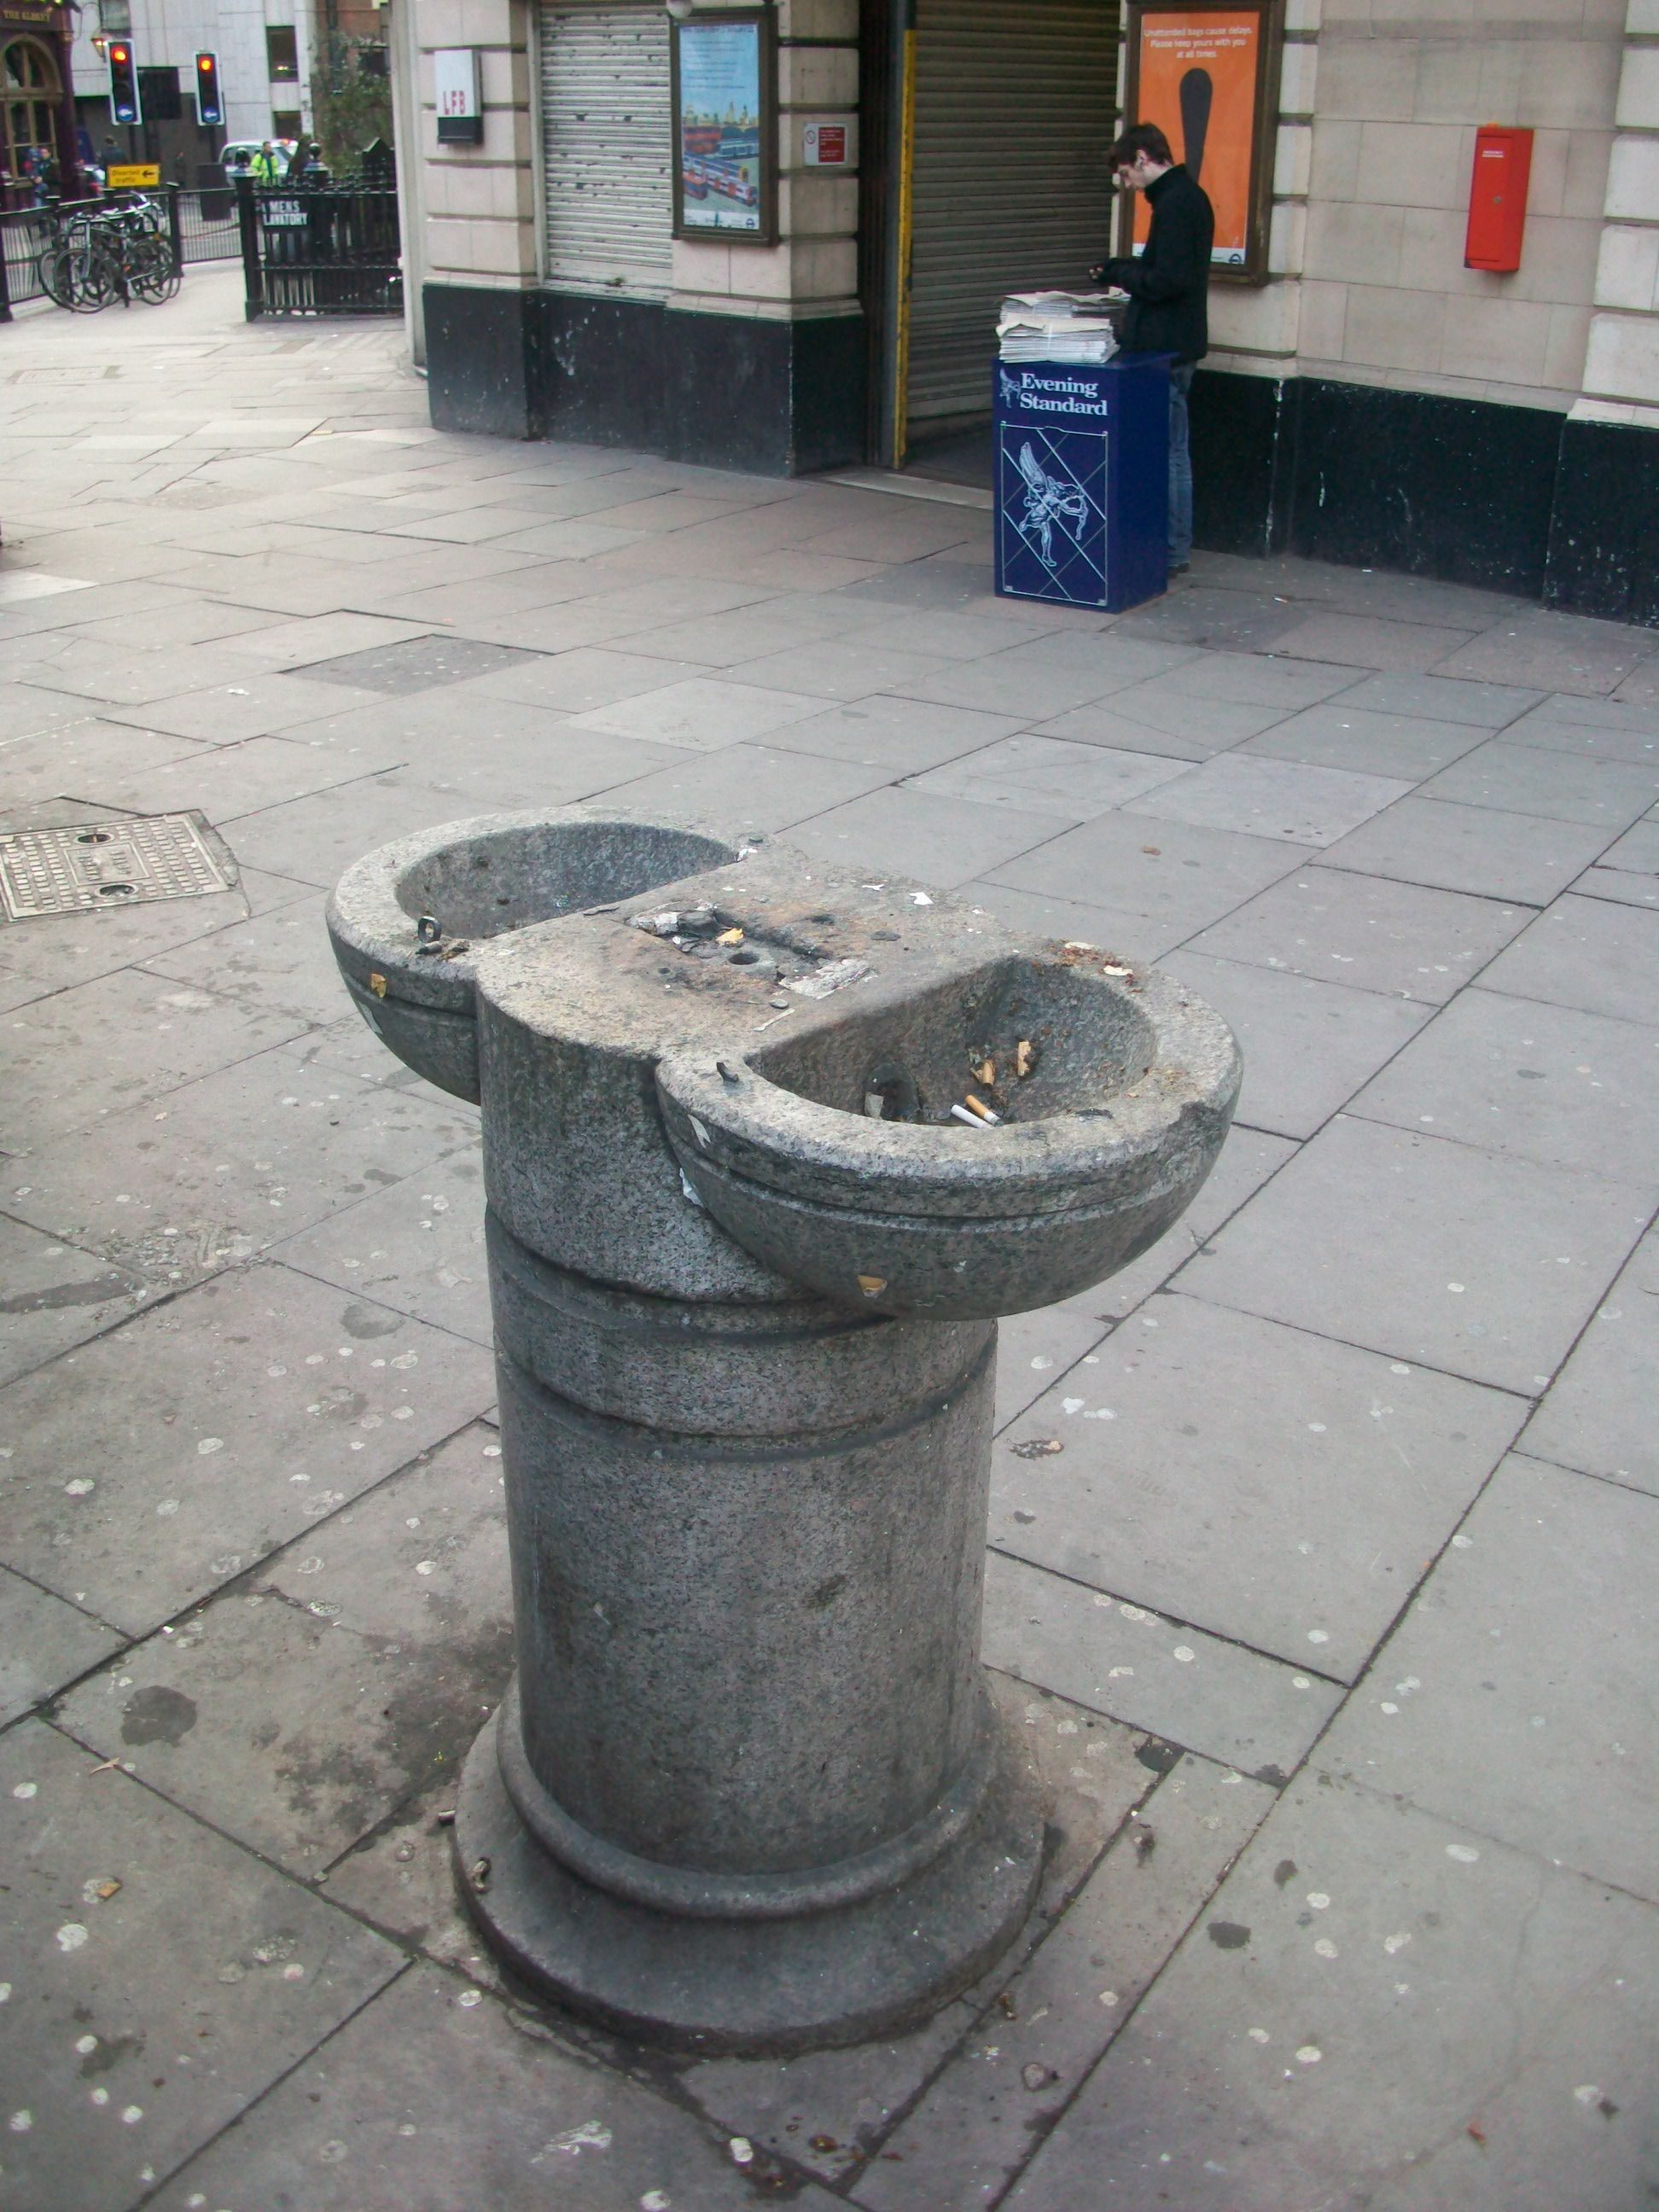 Drinking Fountains Could Return To West End Fitzrovia News